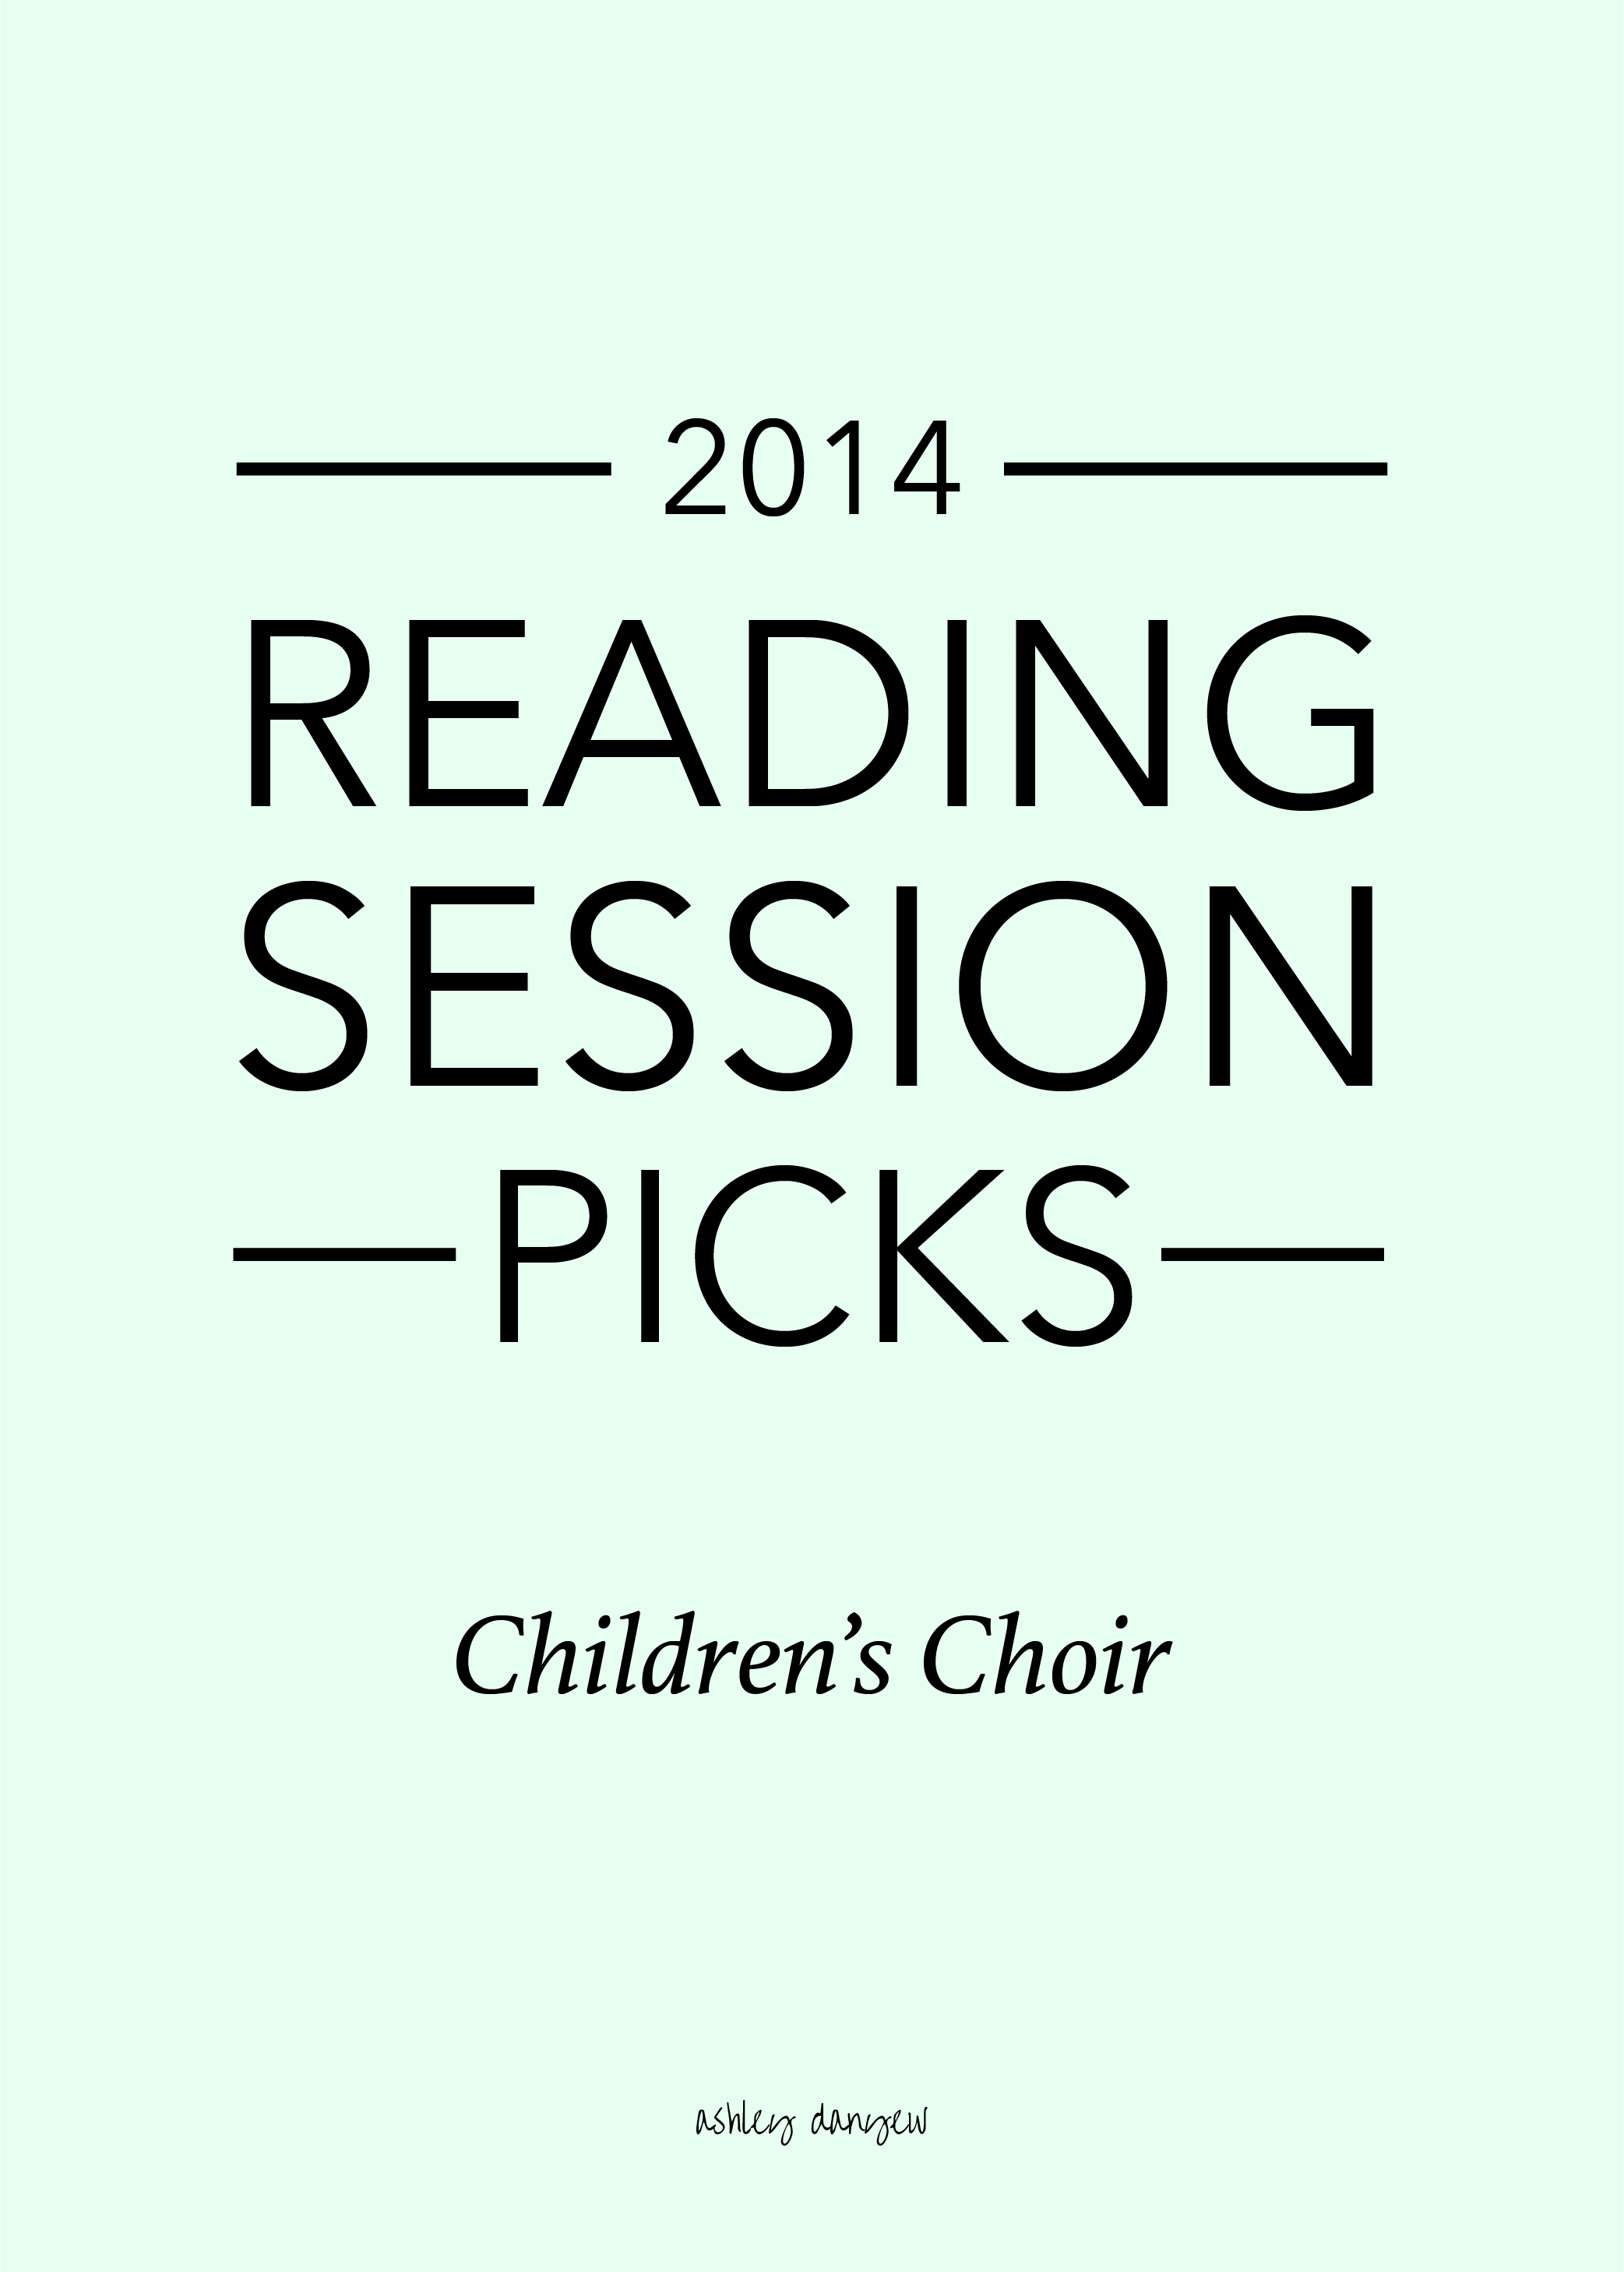 2014 Reading Session Picks.png